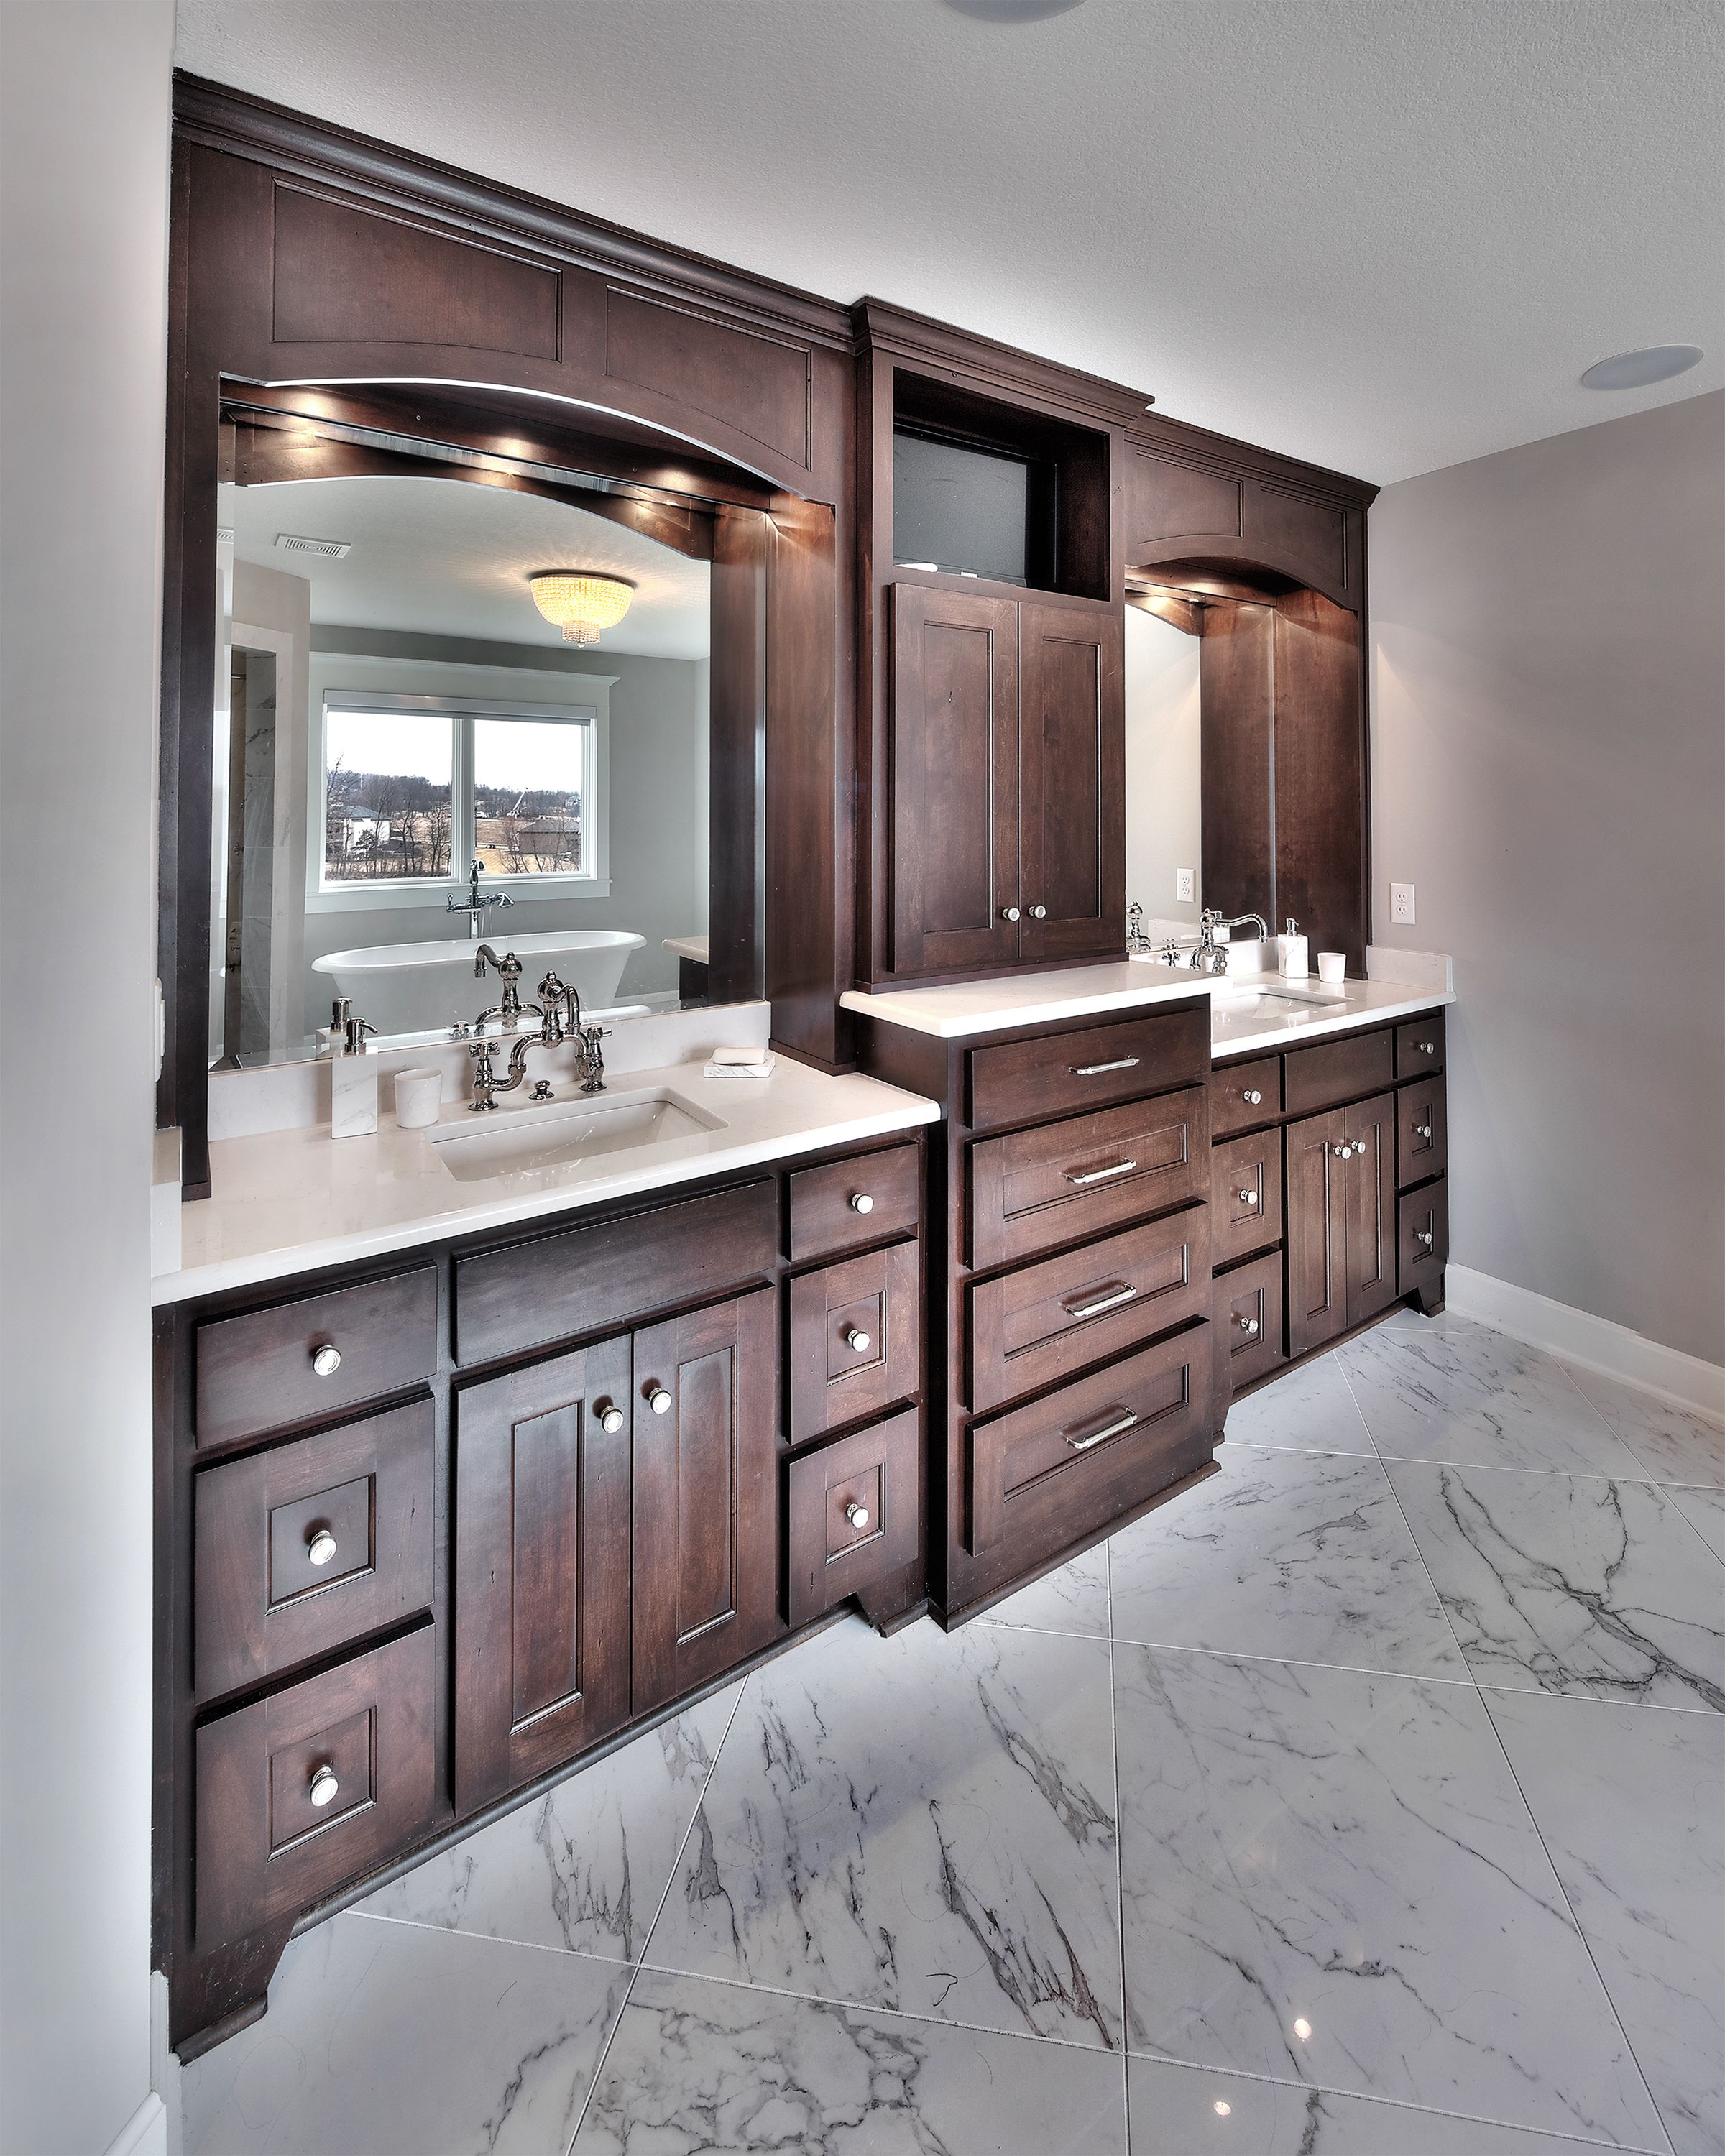 Master bathroom his and her sink future house pinterest